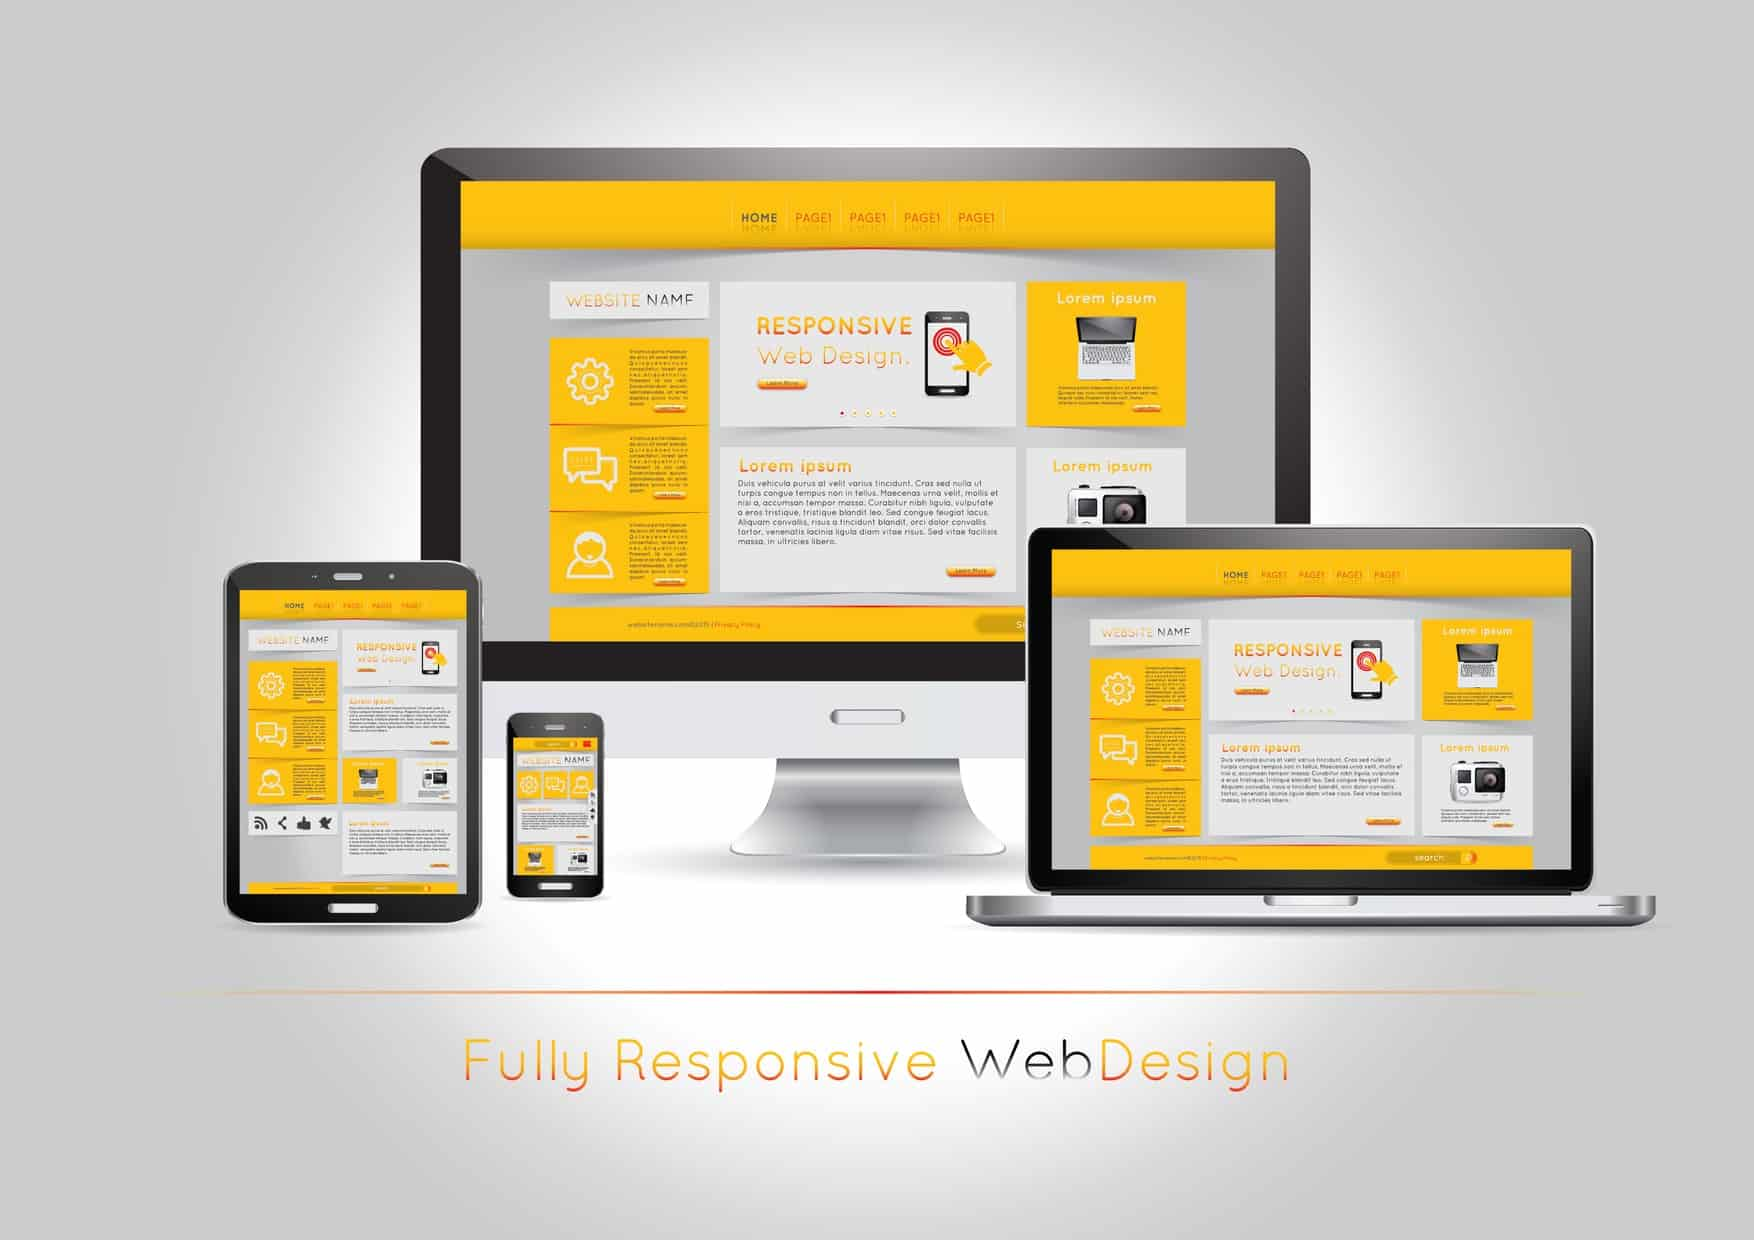 this picture shows a fully responsive website design